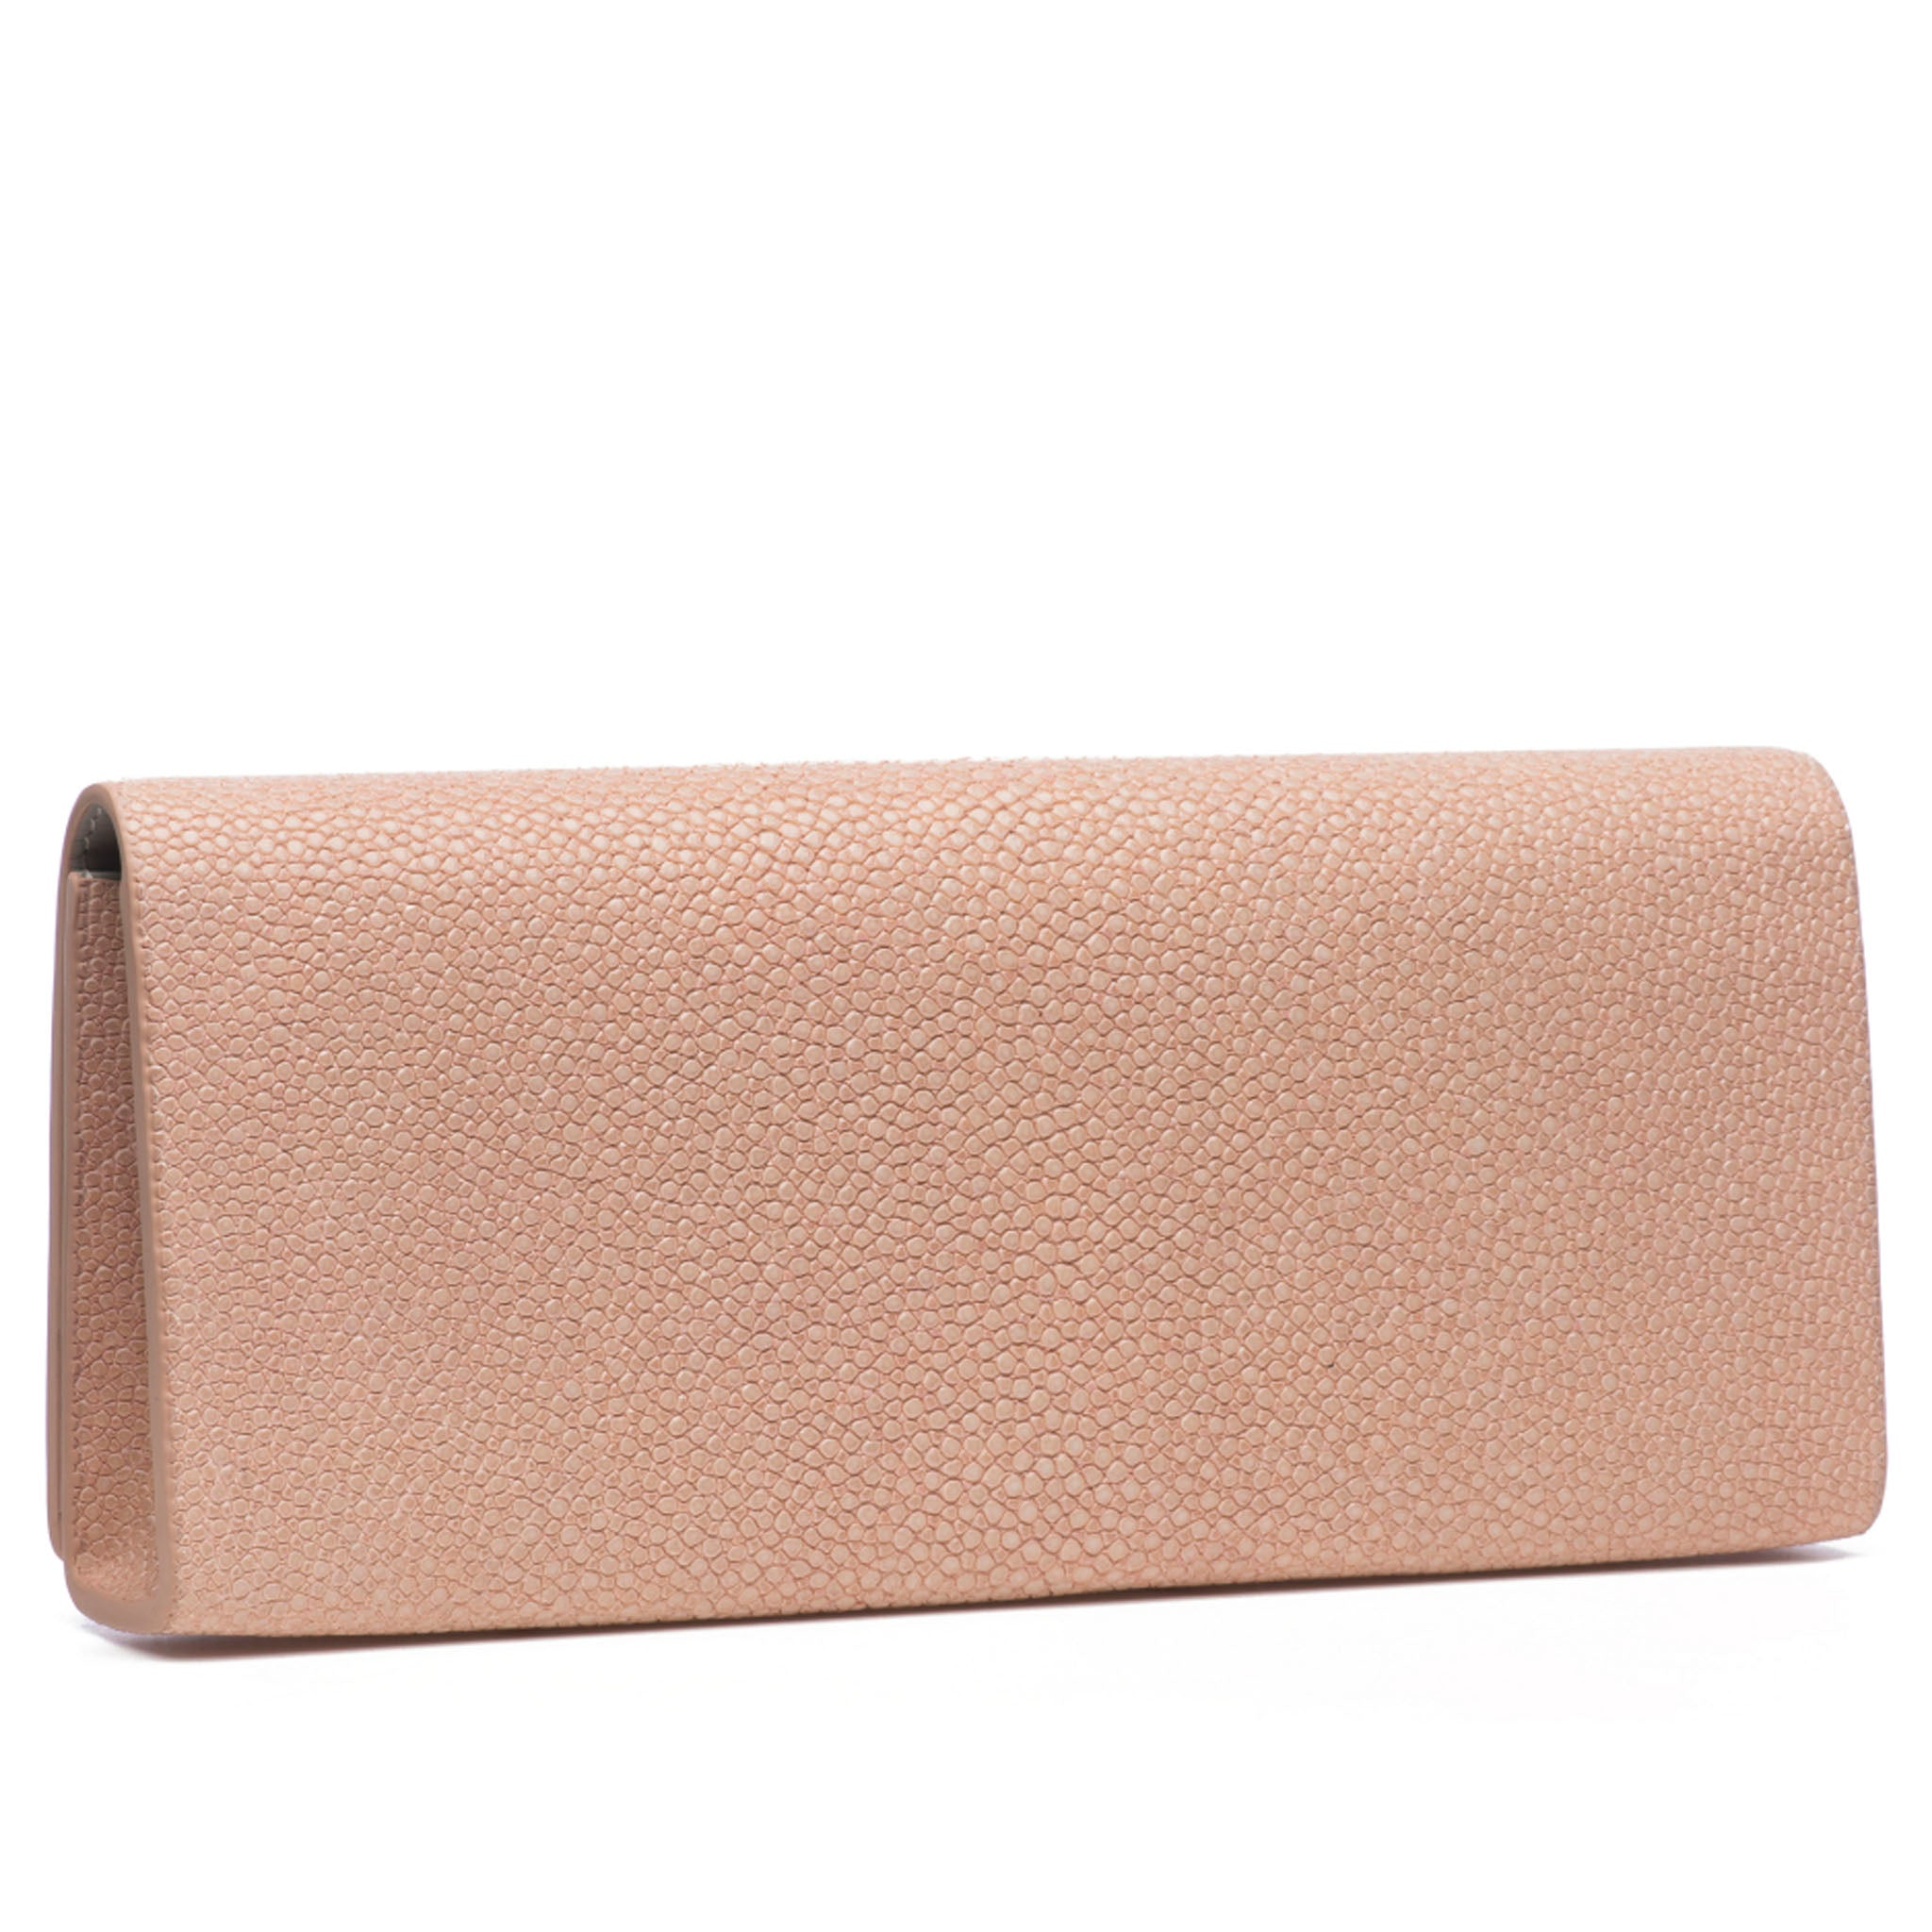 Blush Shagreen Clutch Bag Back View Cleo - Vivo Direct